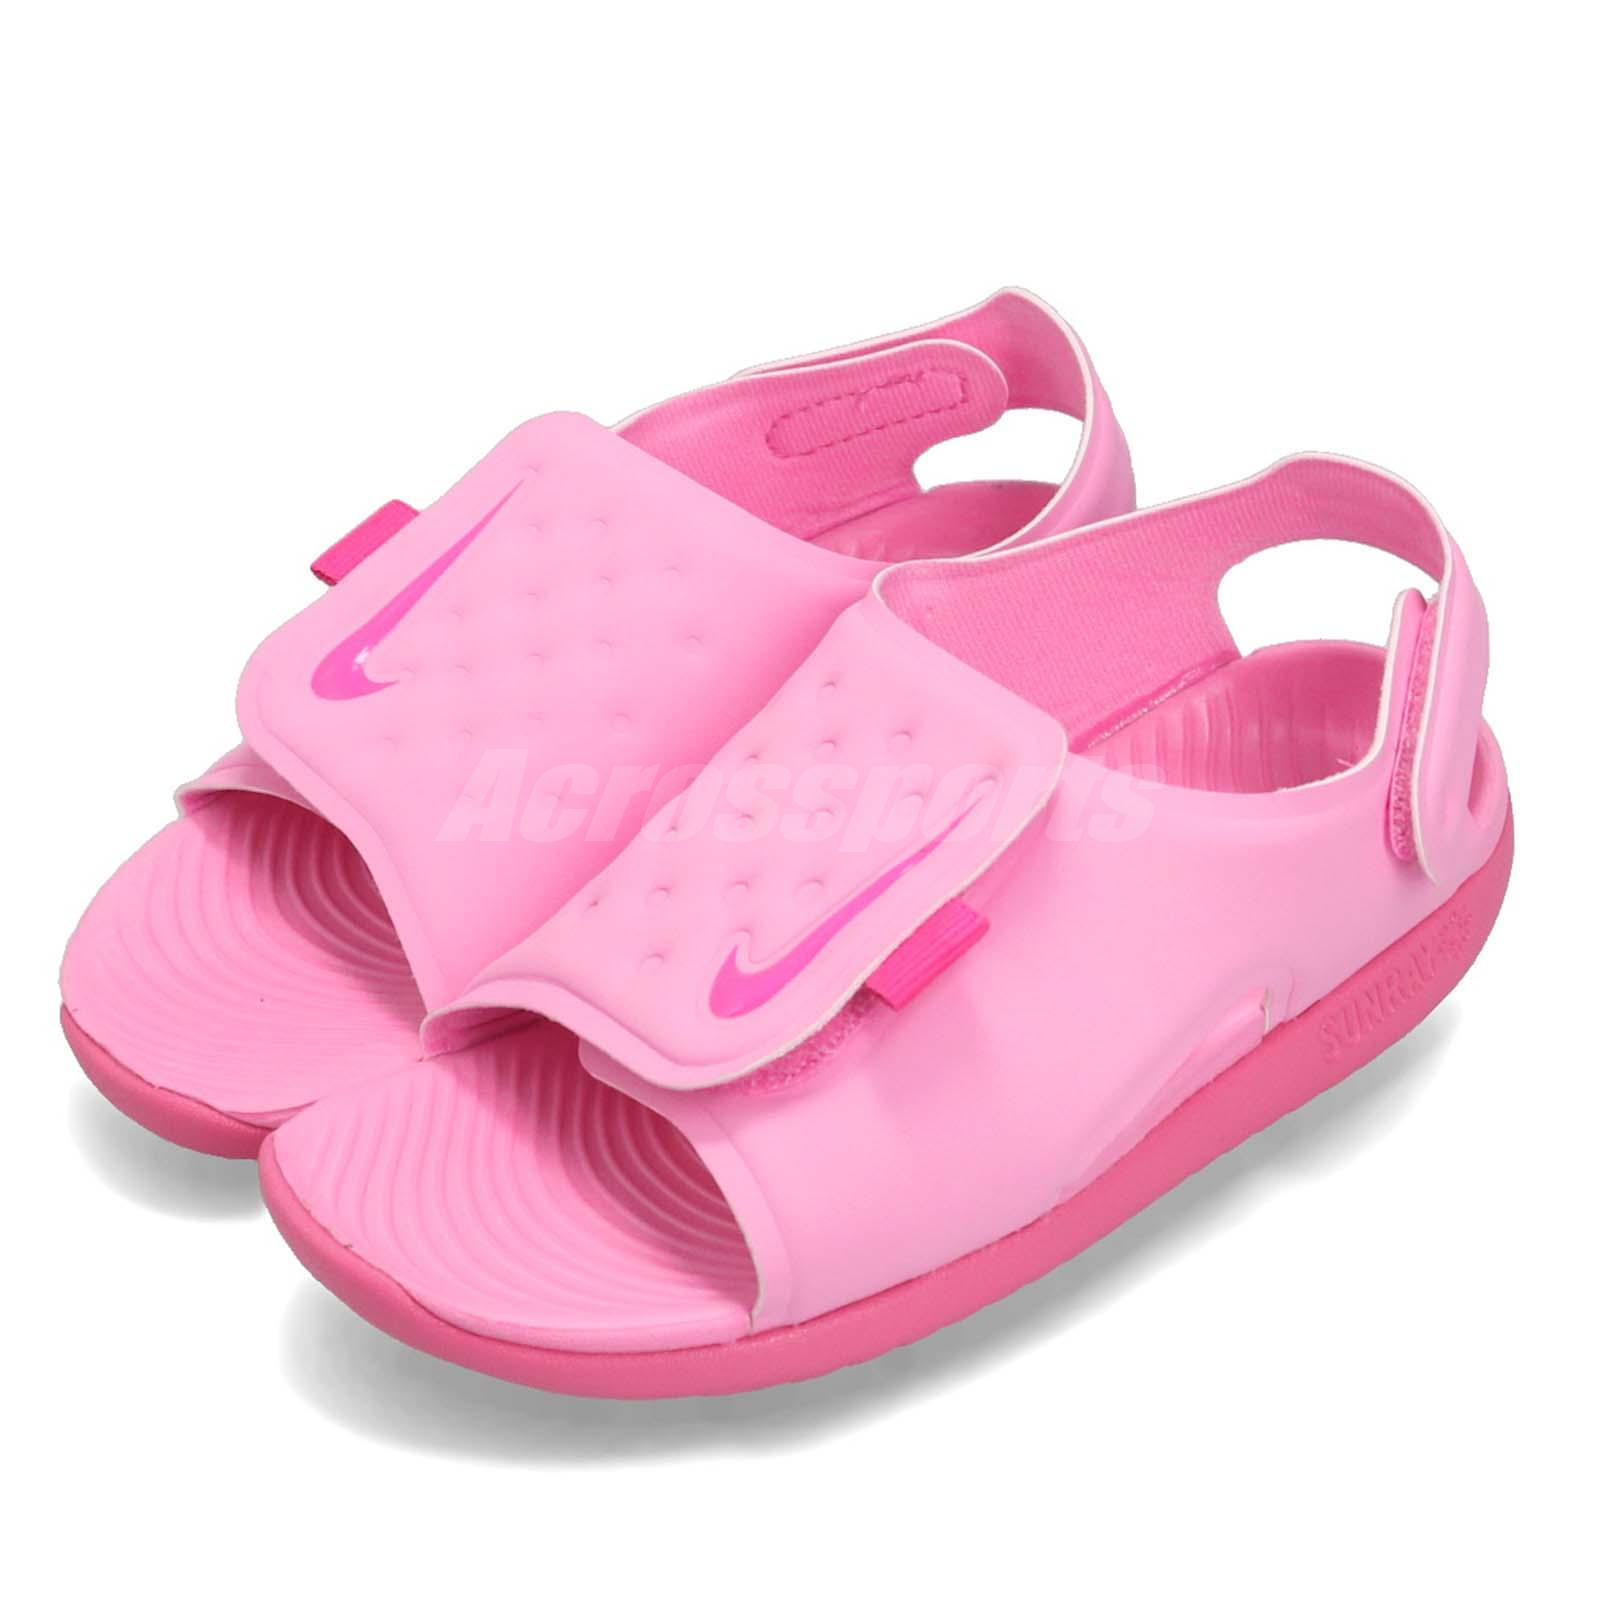 a0e132ca6 Details about Nike Sunray Adjust 5 TD Psychic Pink Toddler Infant Sports  Sandals AJ9077-601